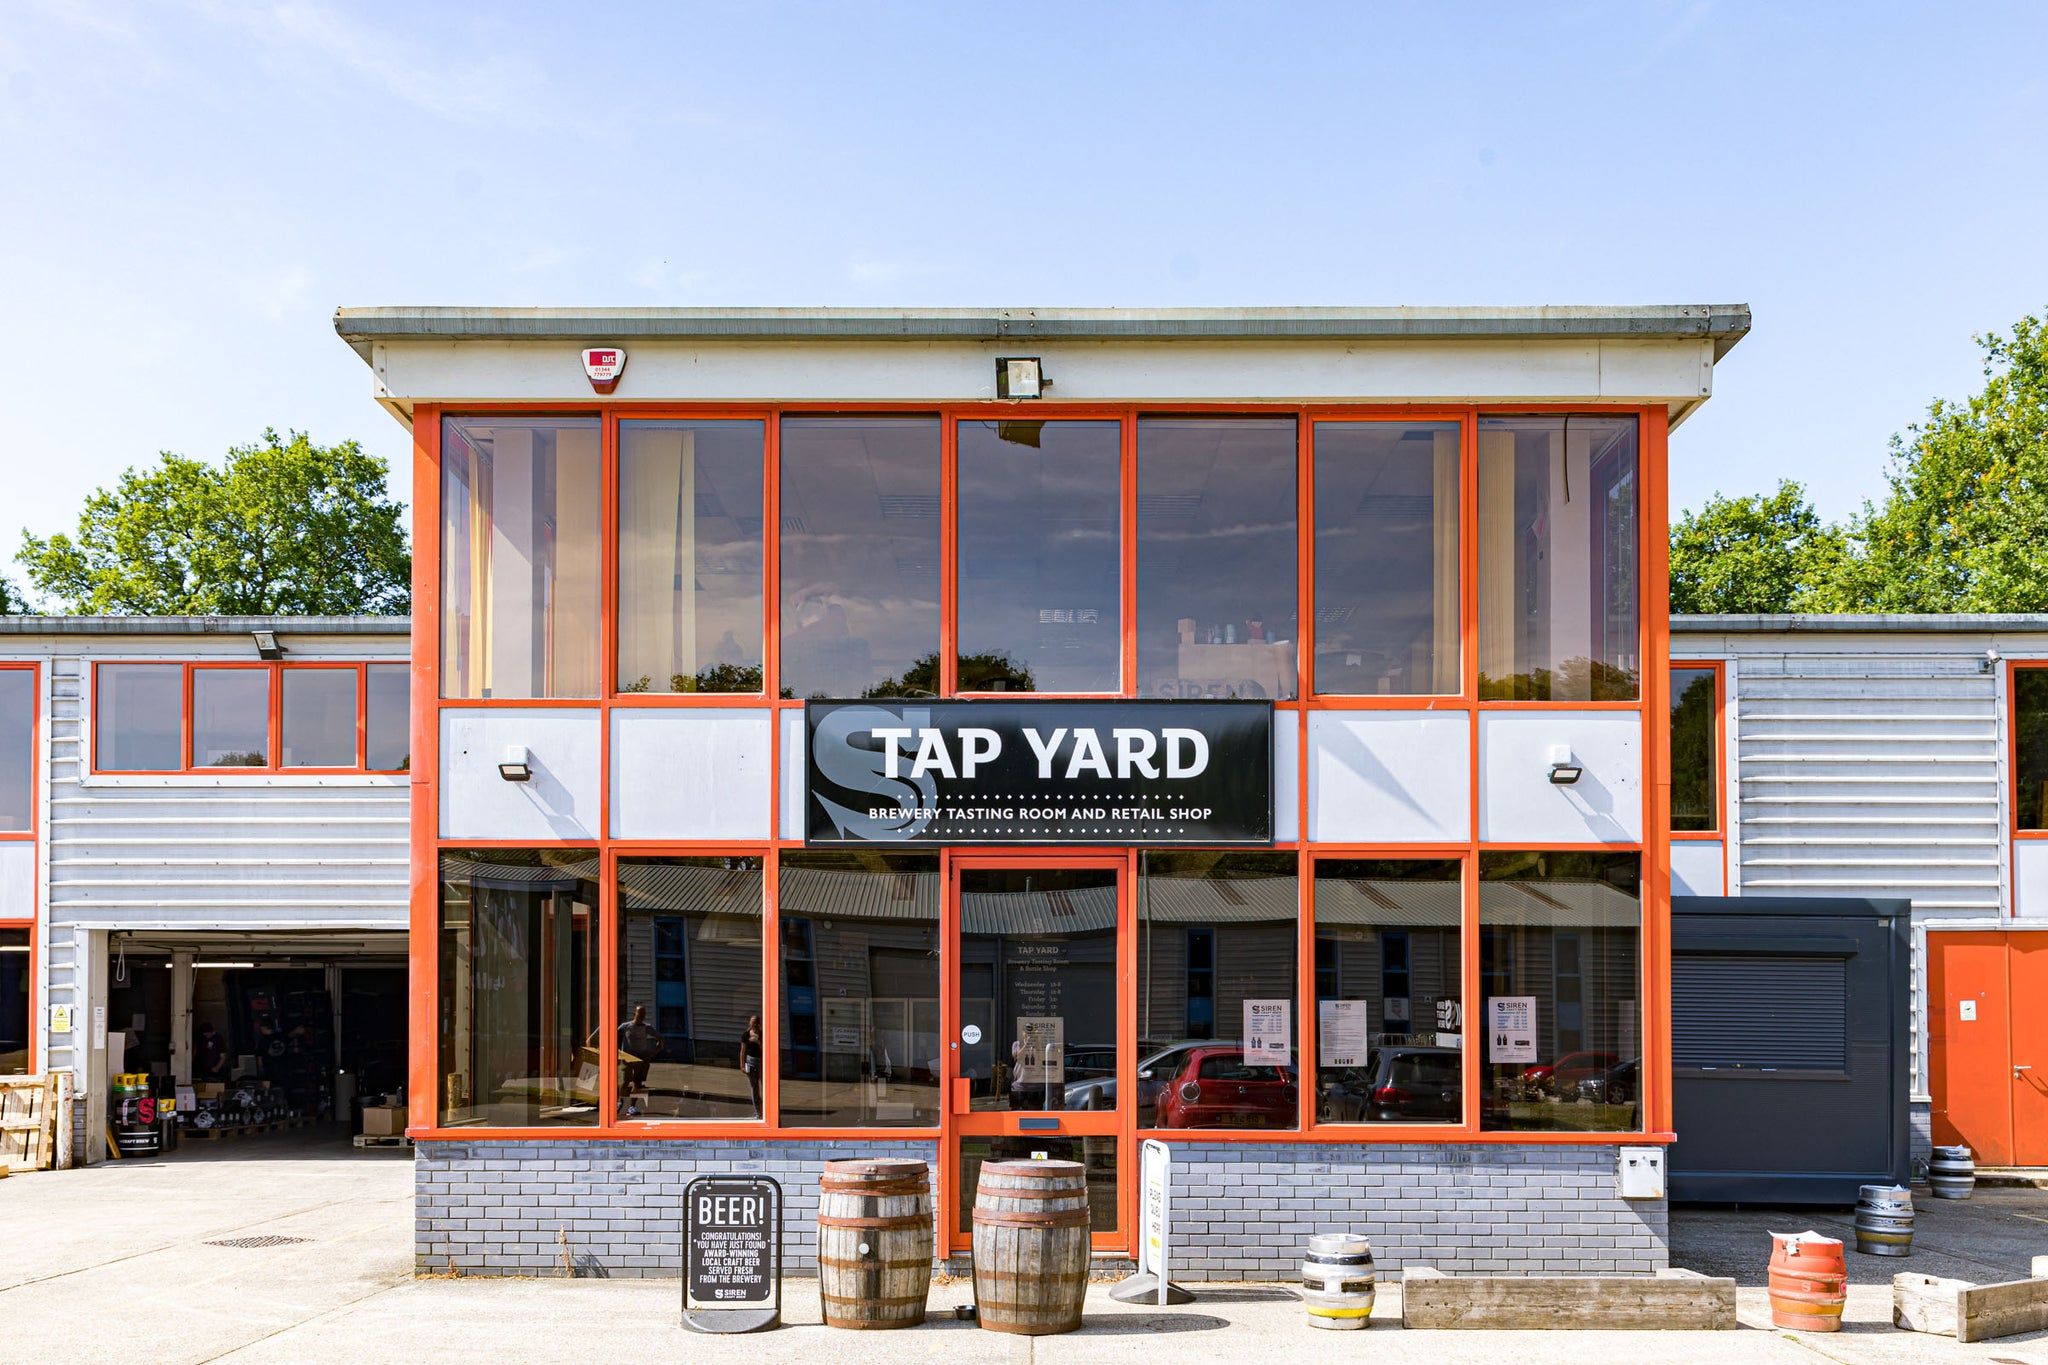 The Siren Craft Brew tap yard is the perfect place to sample the range of Siren beer